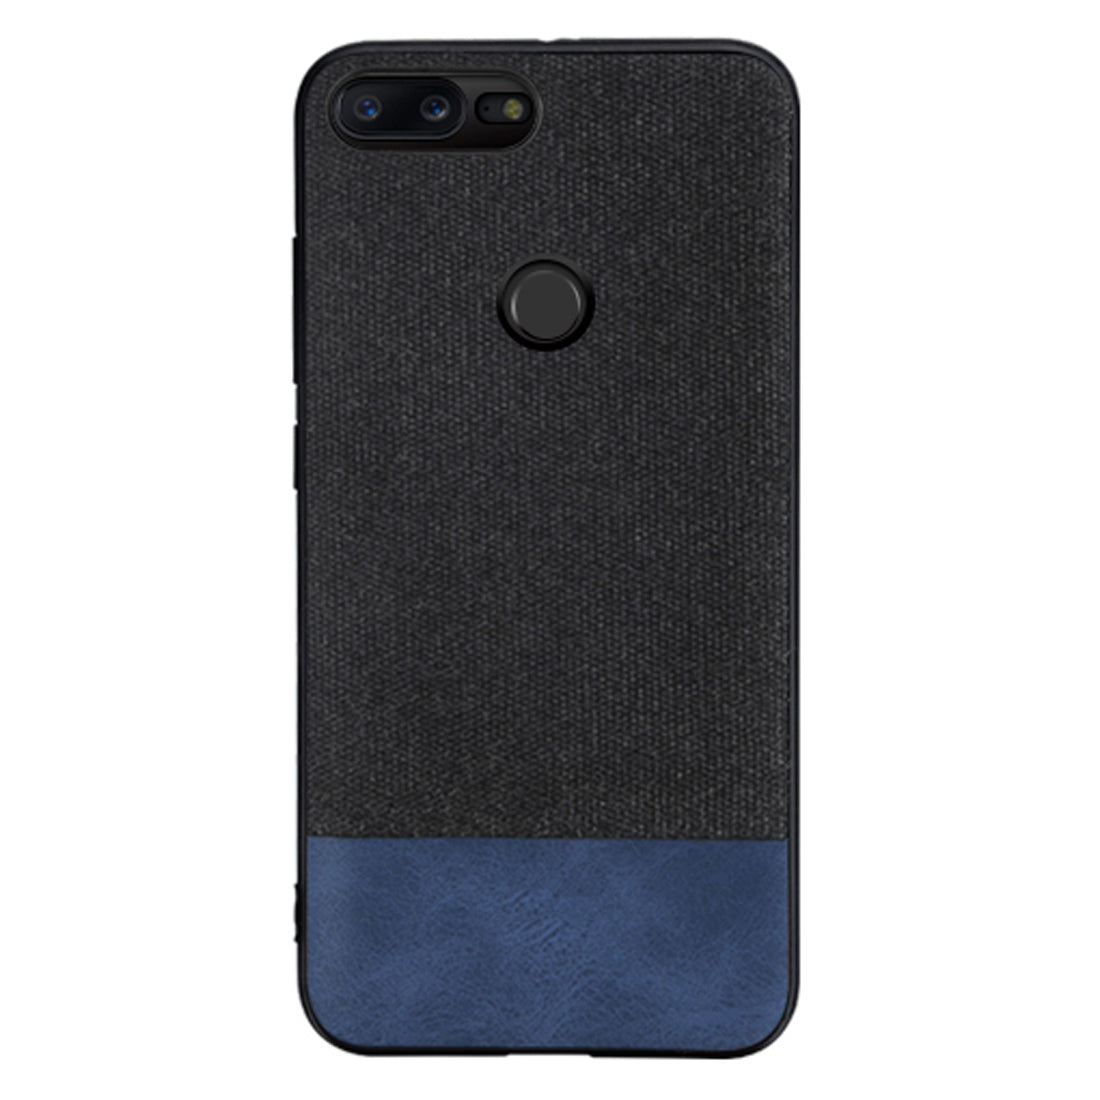 Fabric + Leather Hybrid Protective Case Cover for Oneplus 5T -  Black , Blue - Mobizang